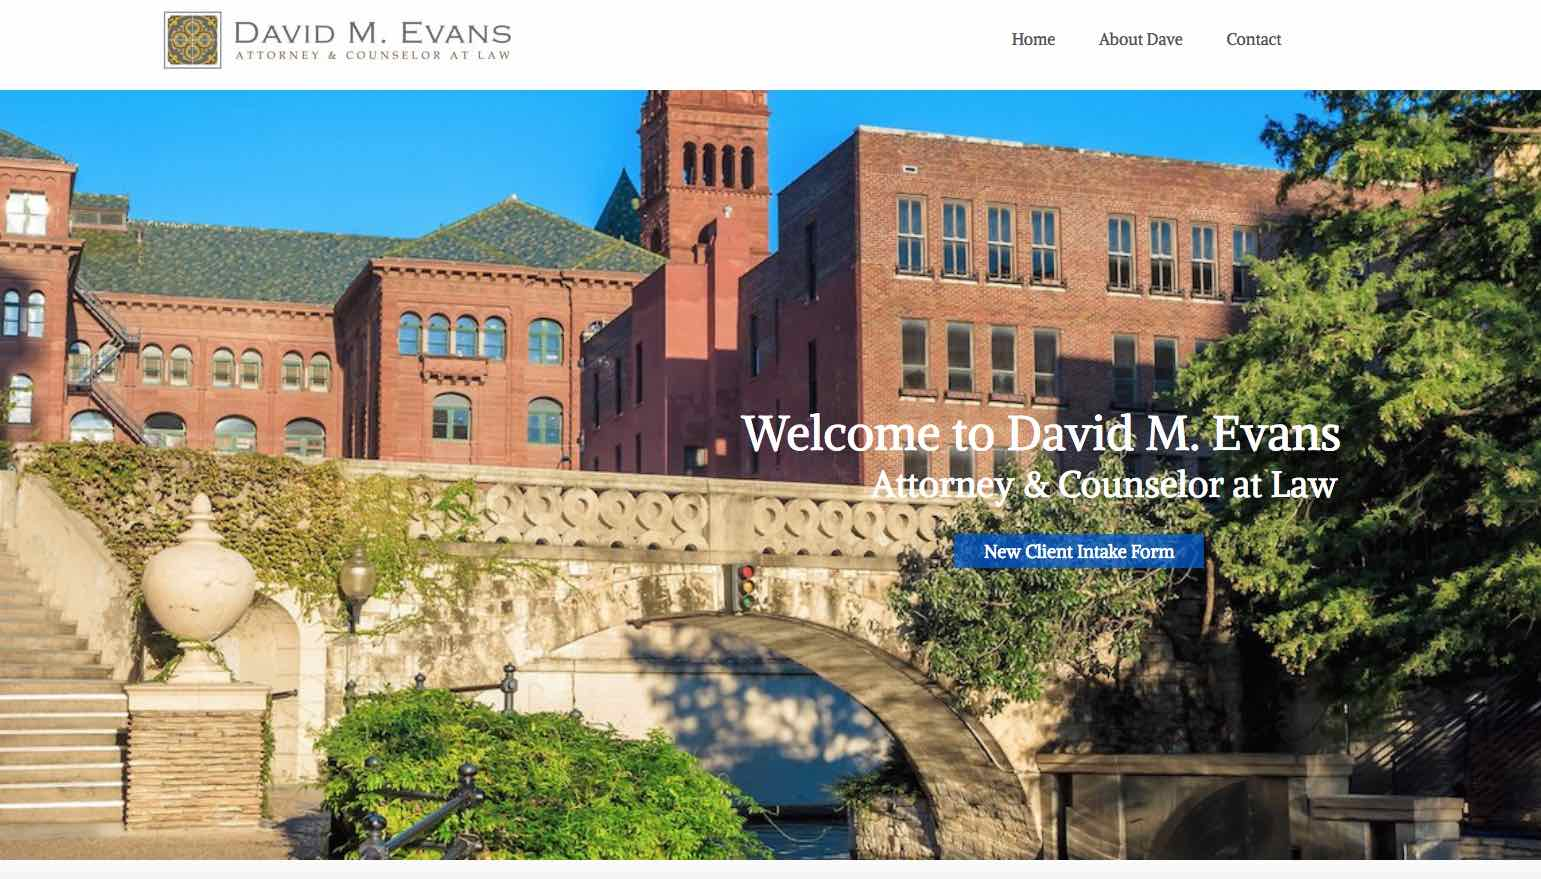 Dave Evans Attorney & Counselor at Law: Establishing an Online Brand Identity